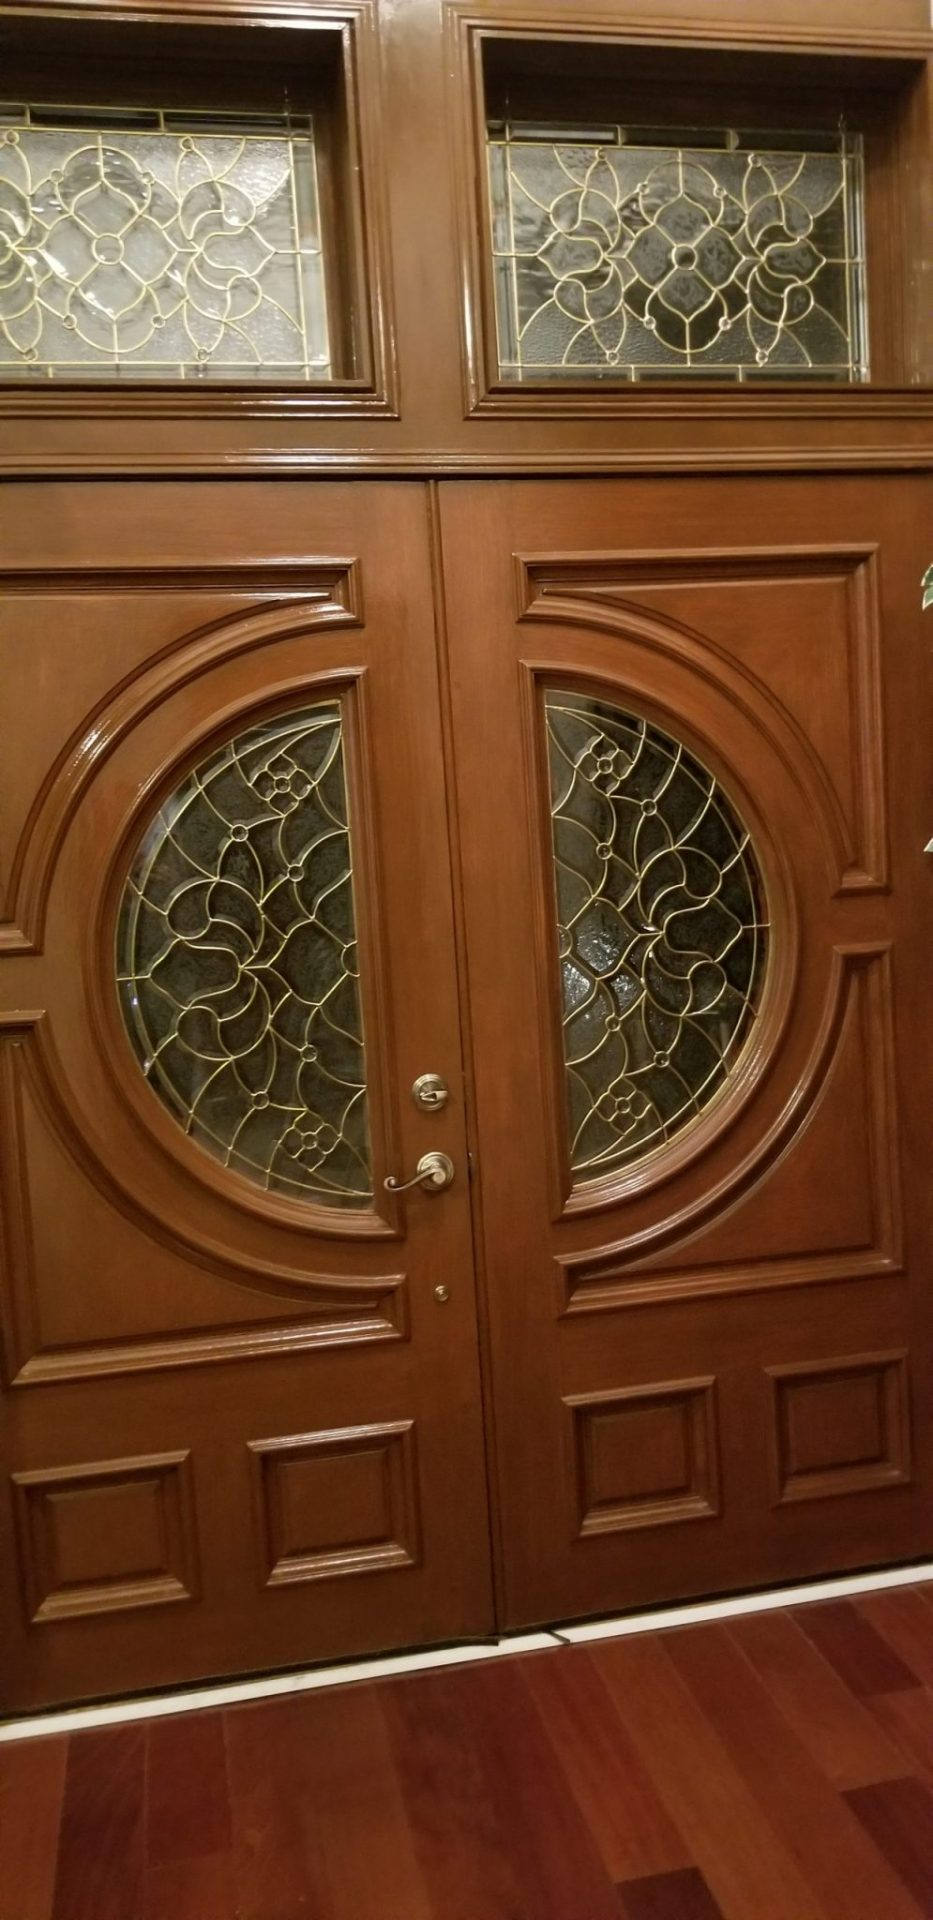 Bdg Style Idaho Project Kitchen: Victorian Style Brass Came Beveled Windows Made For A Entryway